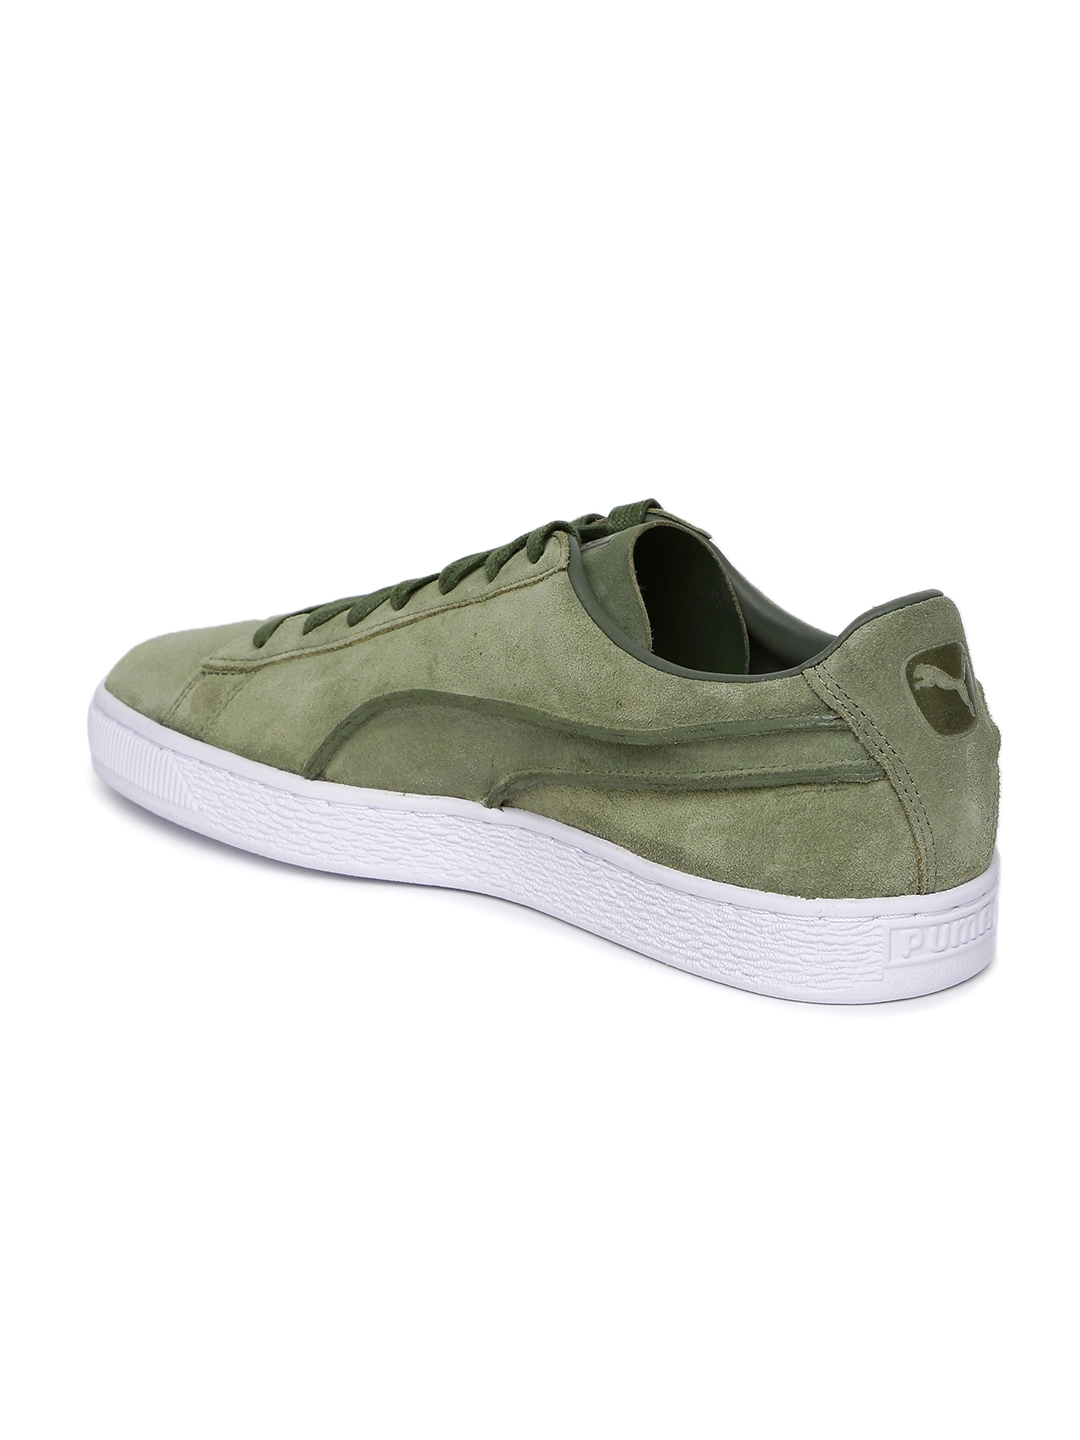 3e0250215a0a Buy Puma Men Olive Green Suede Classic Exposed Seams Sneakers ...